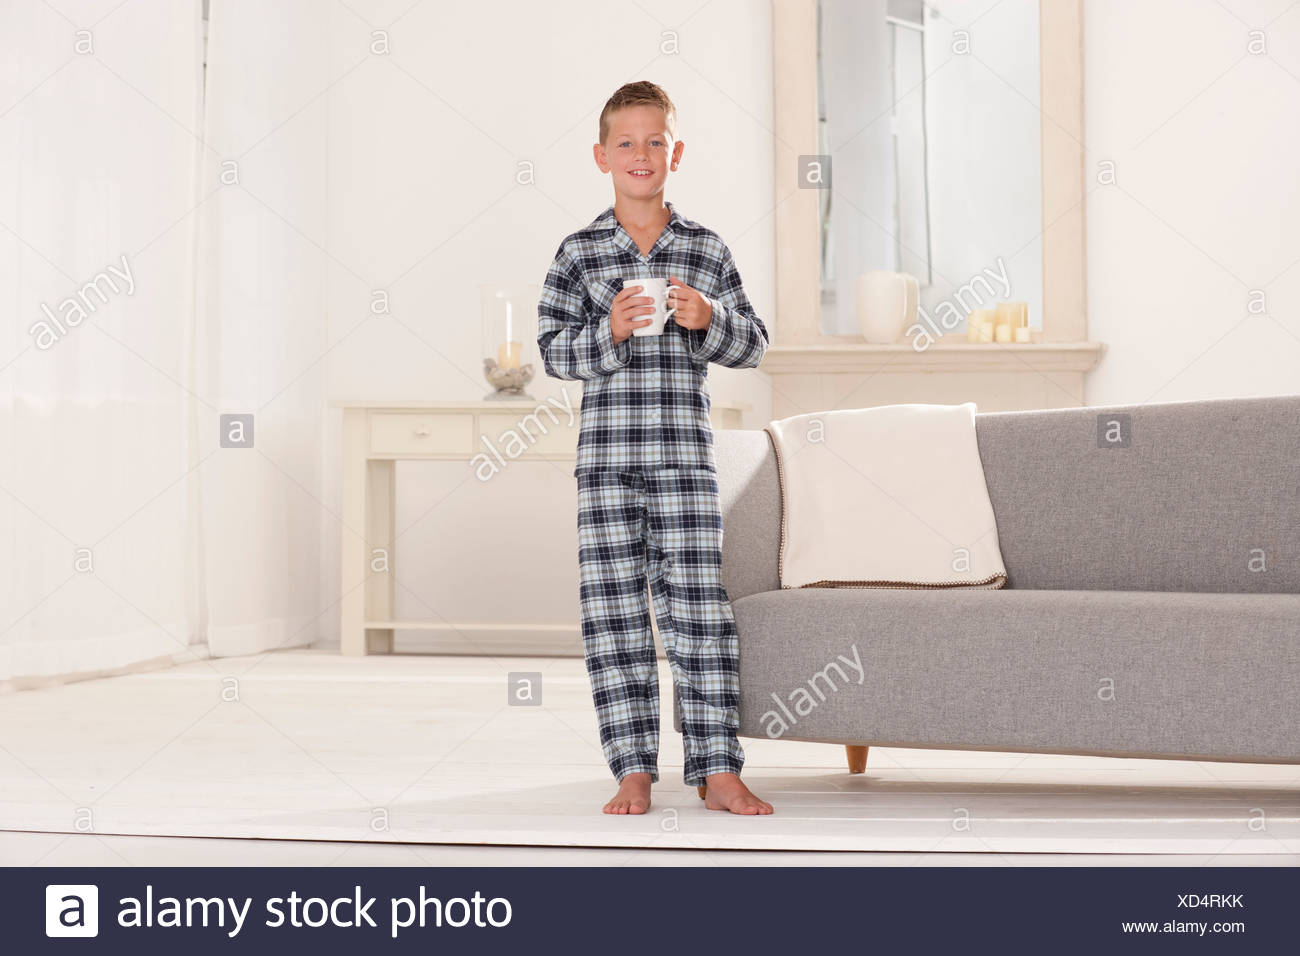 Boy in pajamas with mug in living room - Stock Image